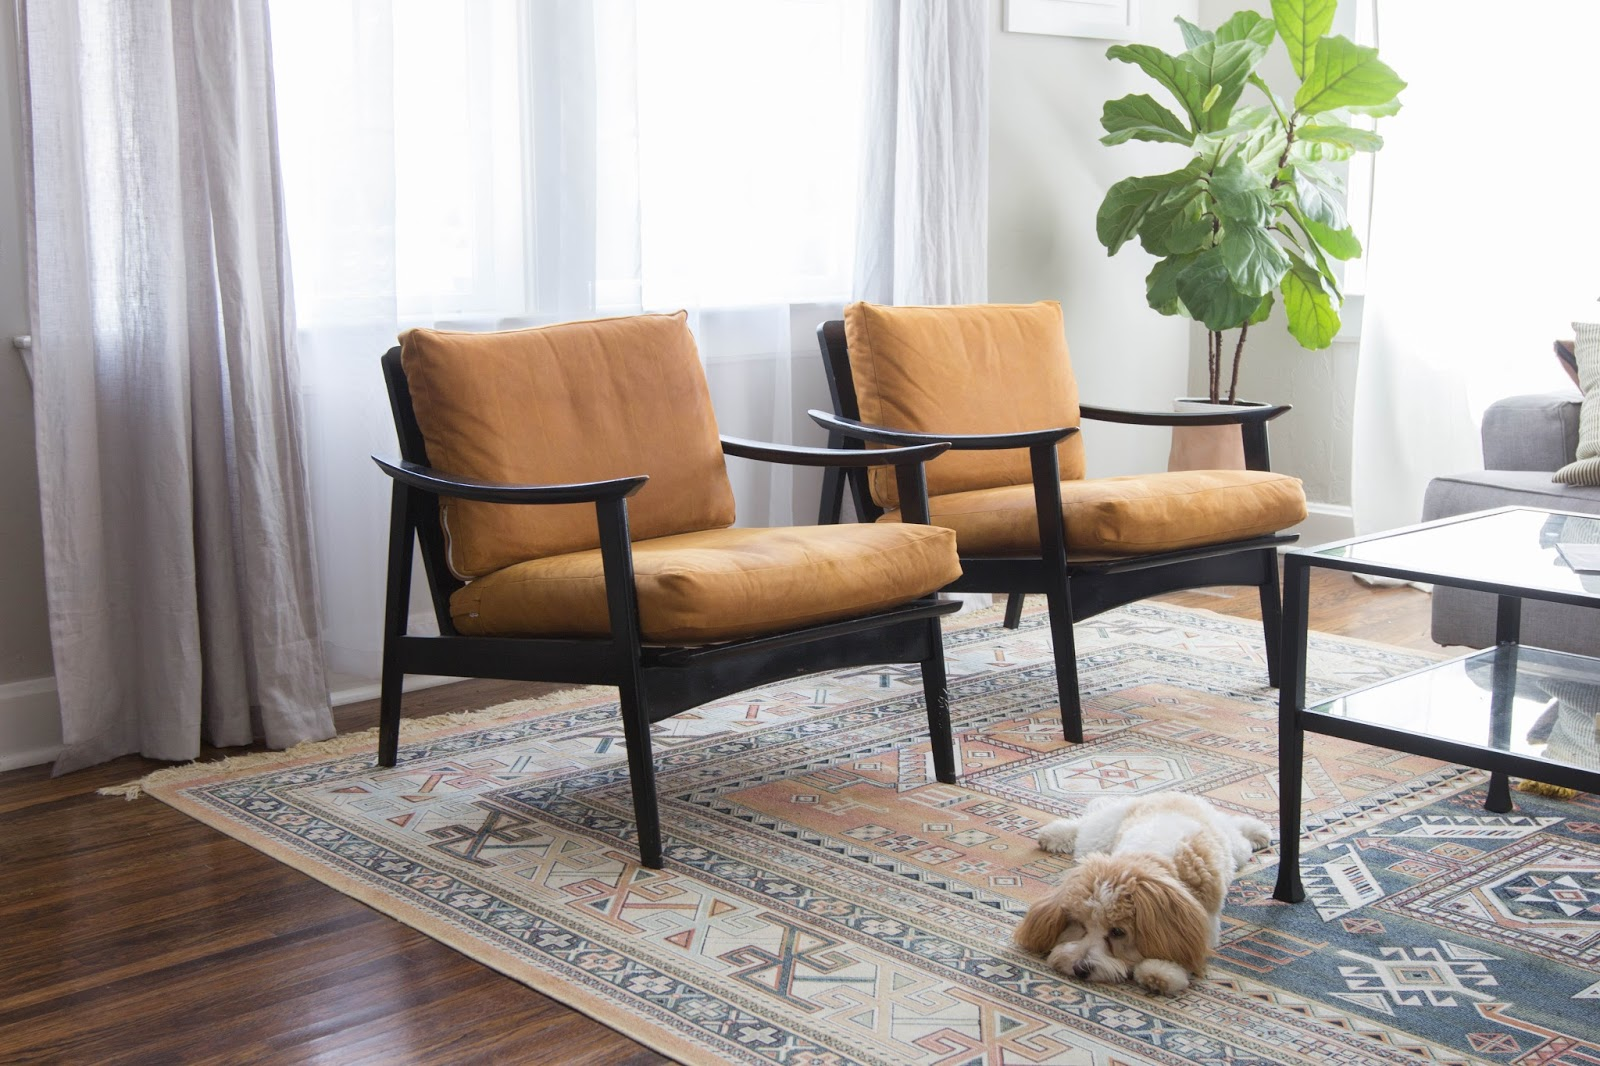 A While Back, Jordan And I Stumbled Across These Two Midcentury Modern  Chairs At A Local Antique Store. We Had Our Eyes On Two Chairs At West Elm  We Wanted ...